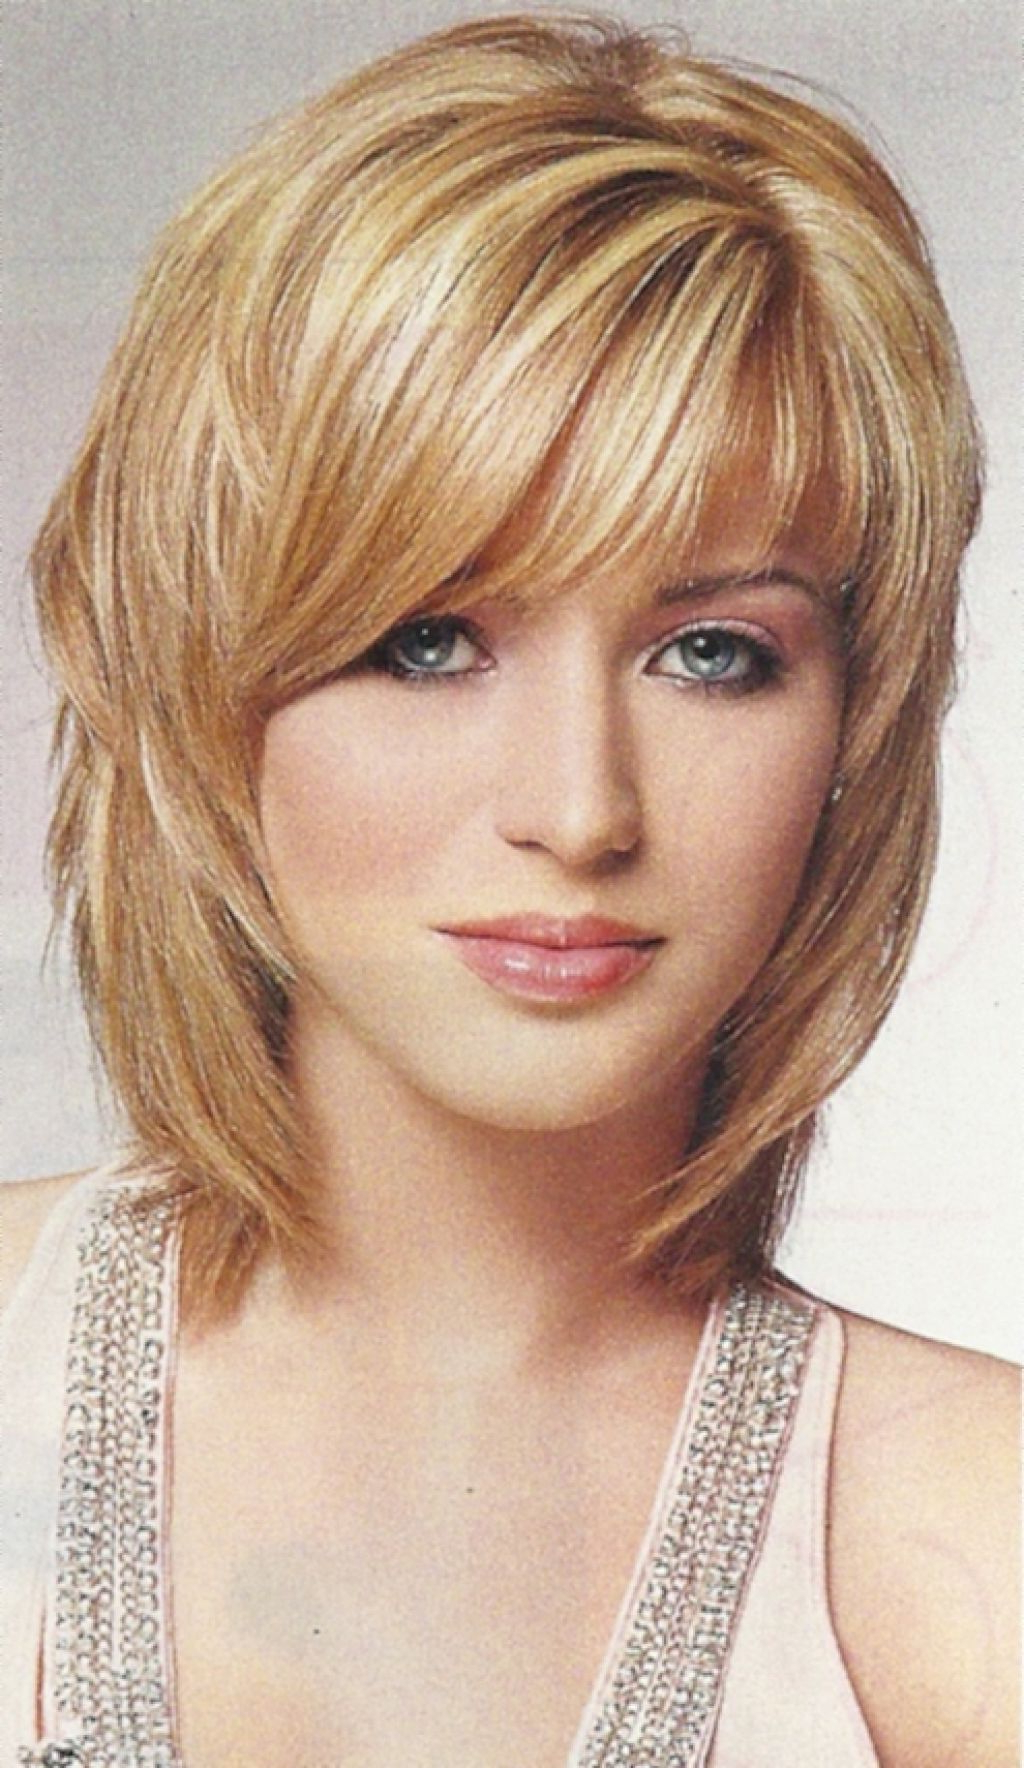 Cute Medium Short Hairstyles – Hairstyle For Women & Man Pertaining To Most Recent Cute Medium Haircuts With Bangs And Layers (View 10 of 20)